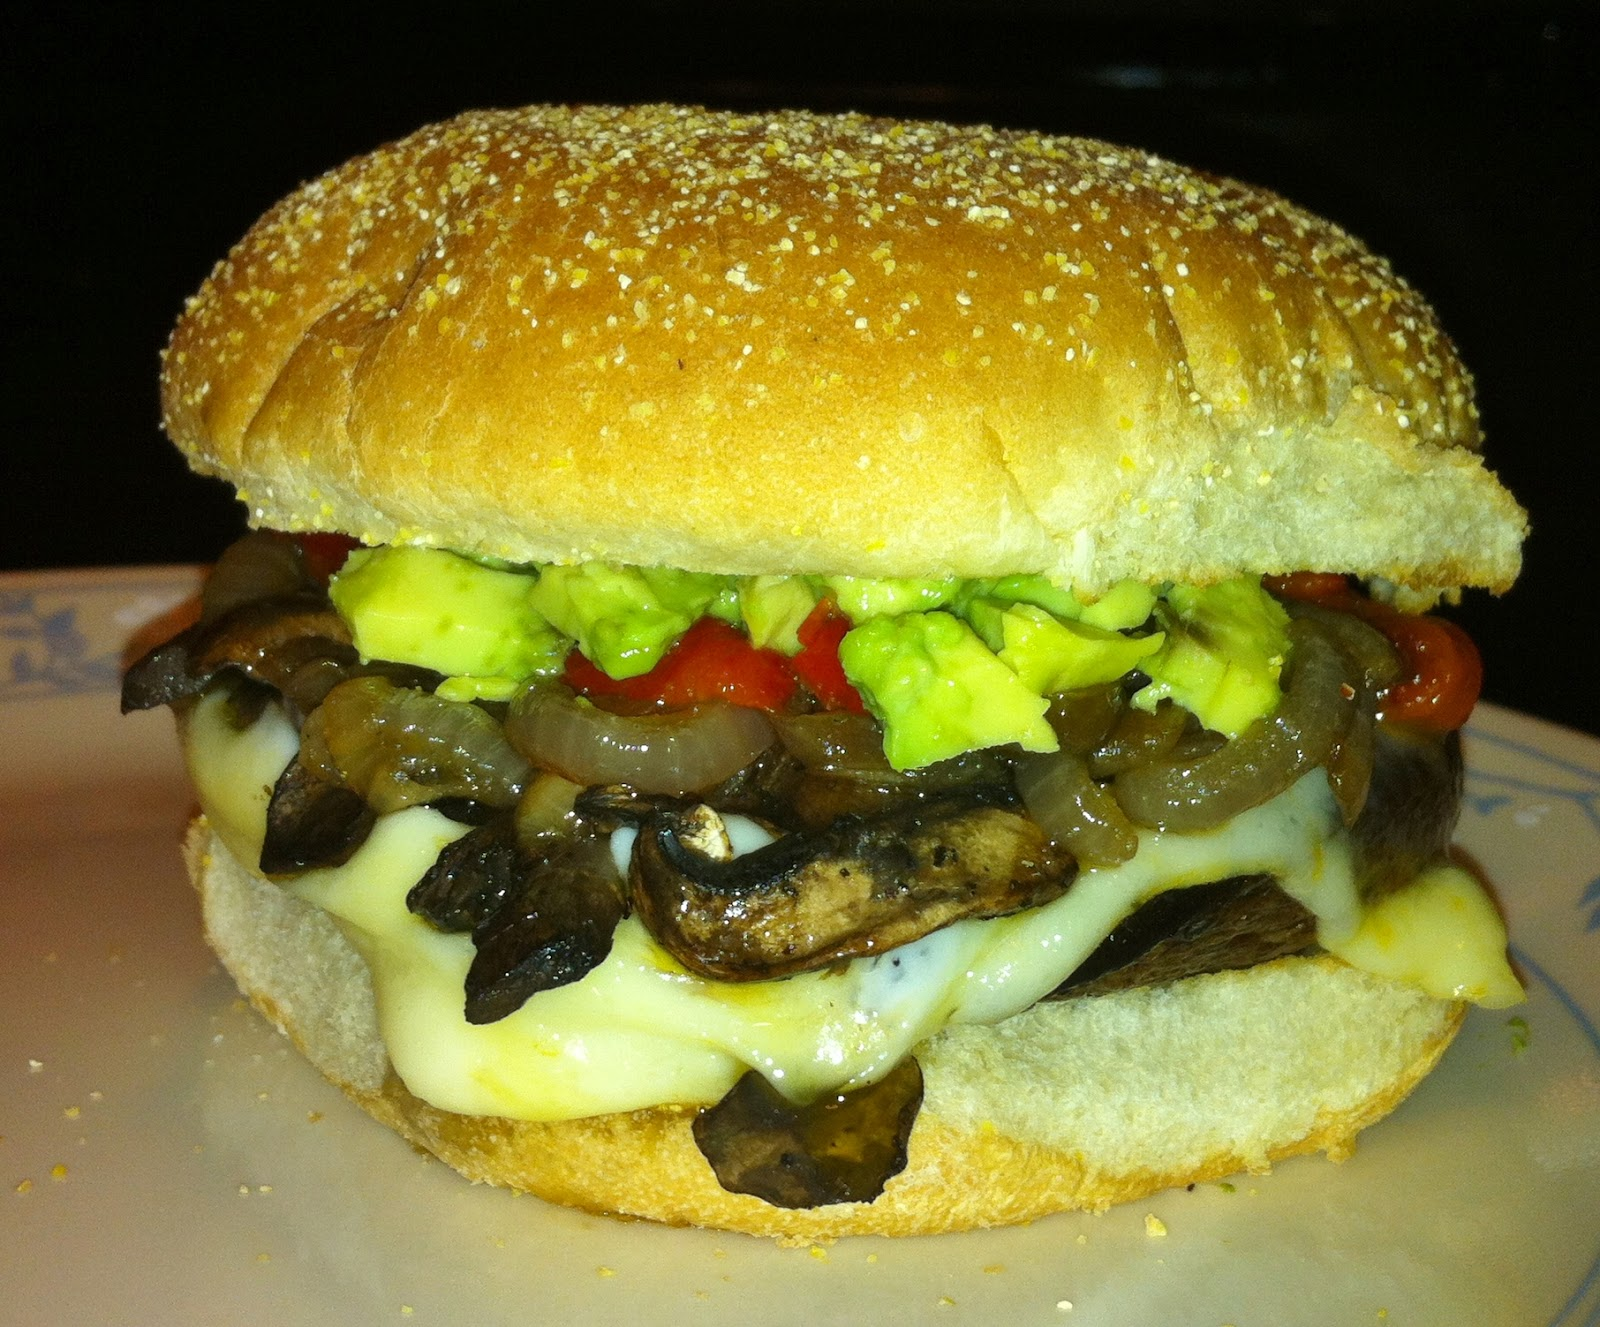 Double Mushroom, Double Cheese, Eat right up, It's Sure to Please!